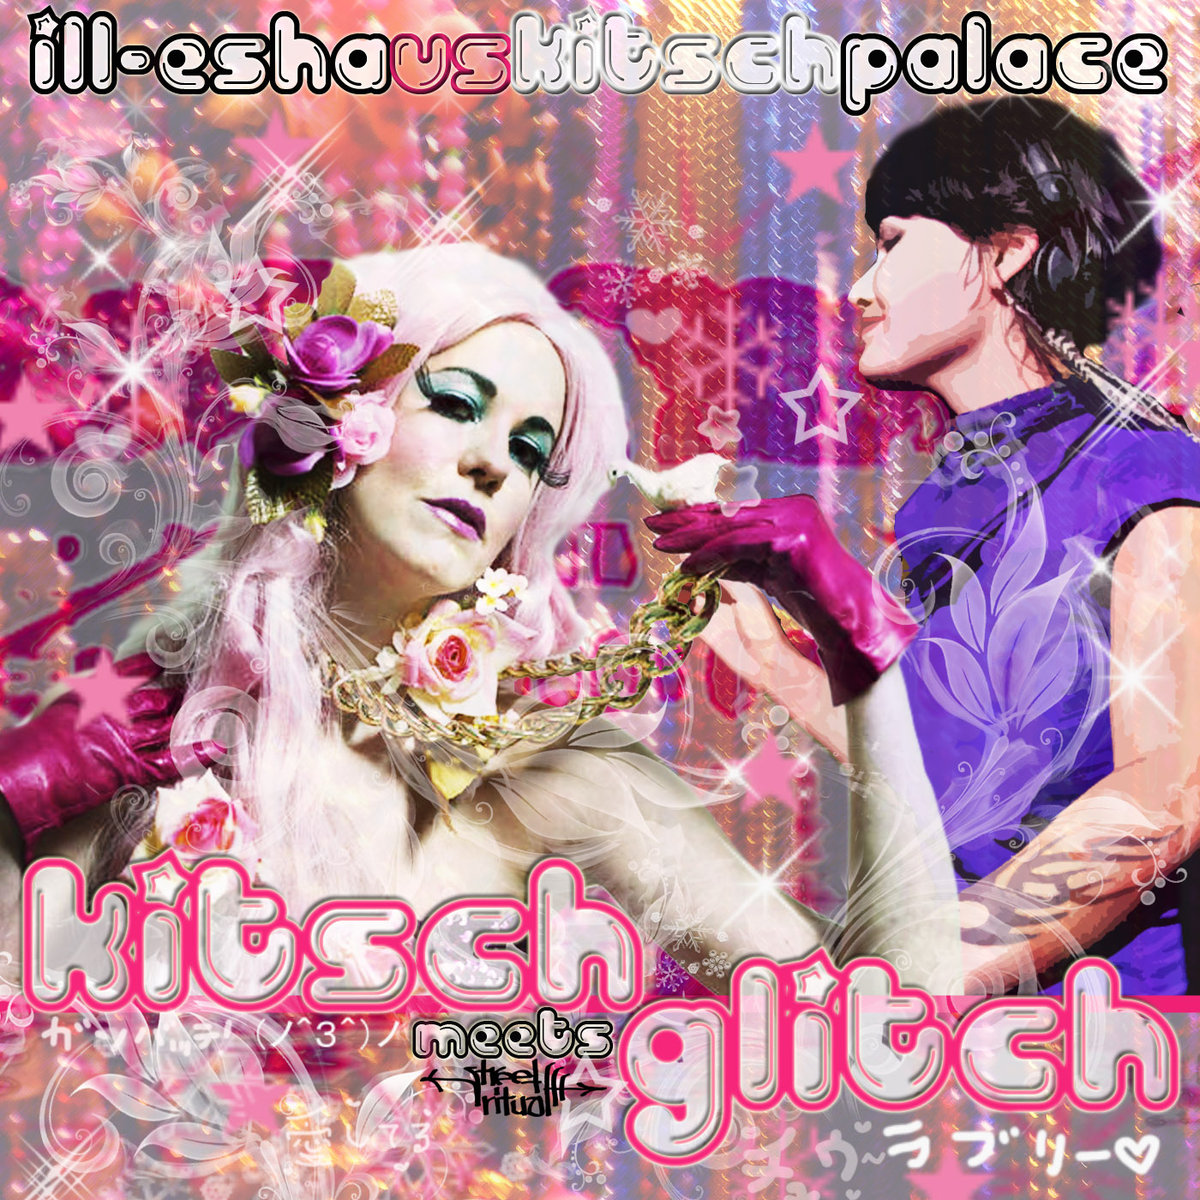 ill-esha vs. Kitsch Palace - Shiki Miki @ 'Kitsch Meets Glitch' album (bass, electronic)